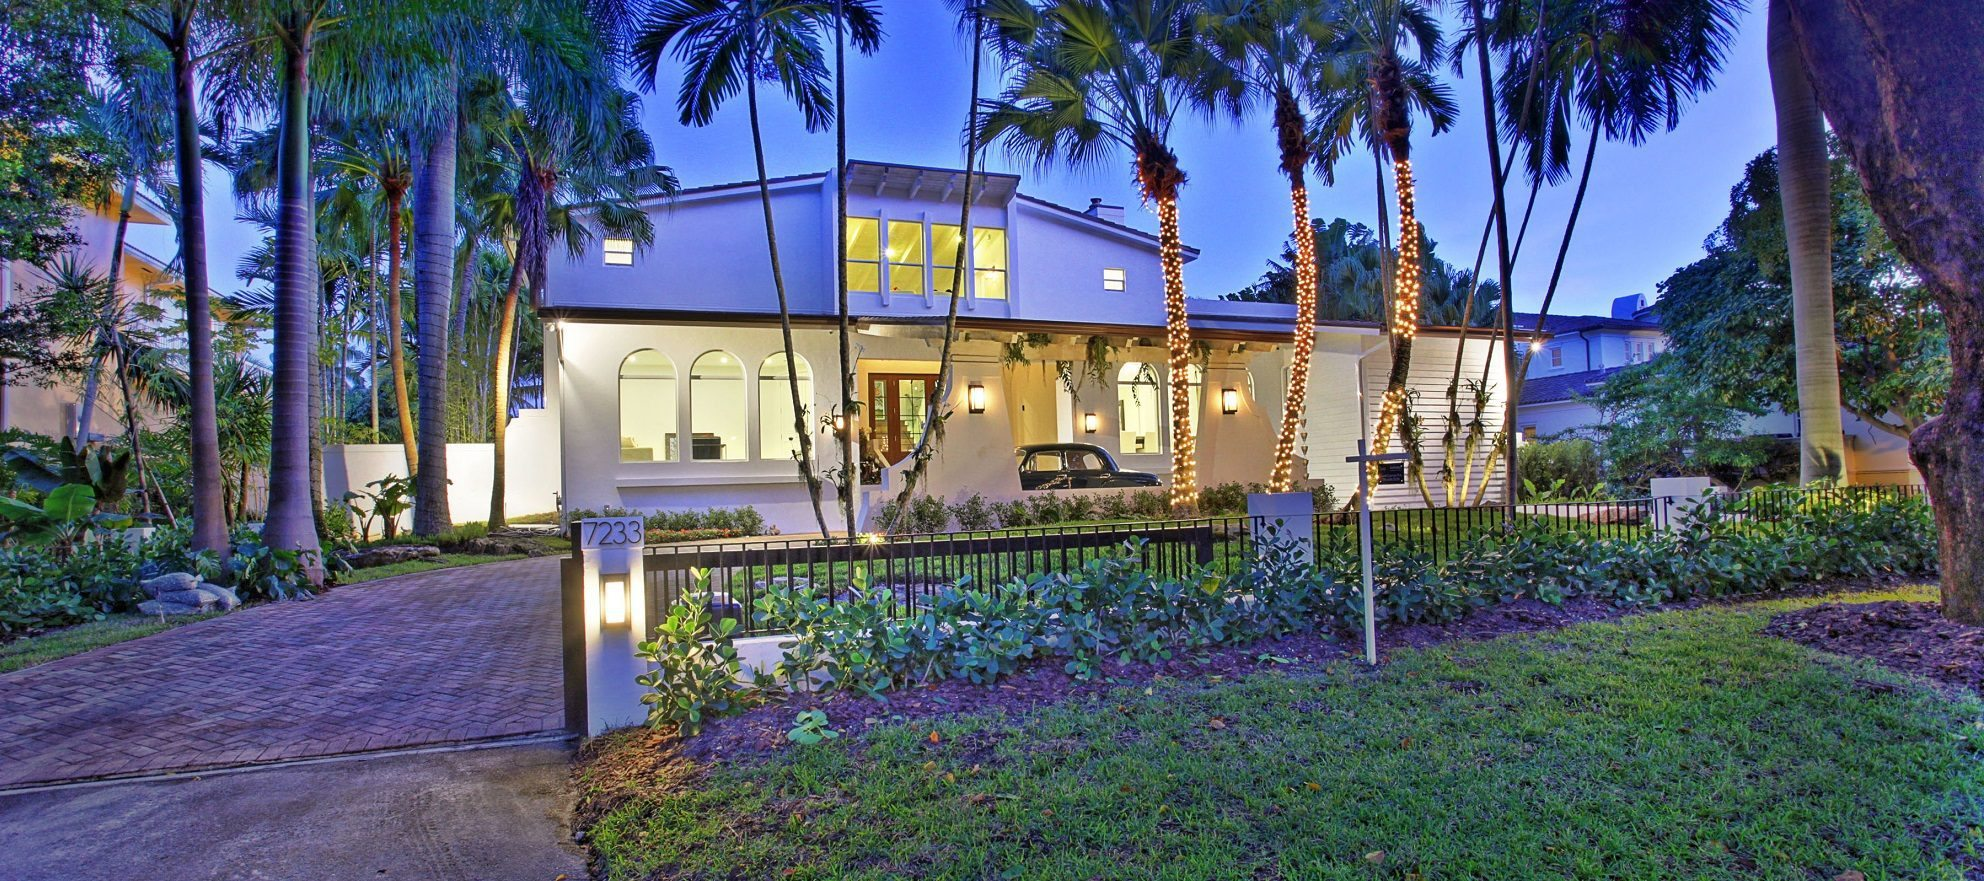 Luxury listing: Sleek and modern in Coral Gables